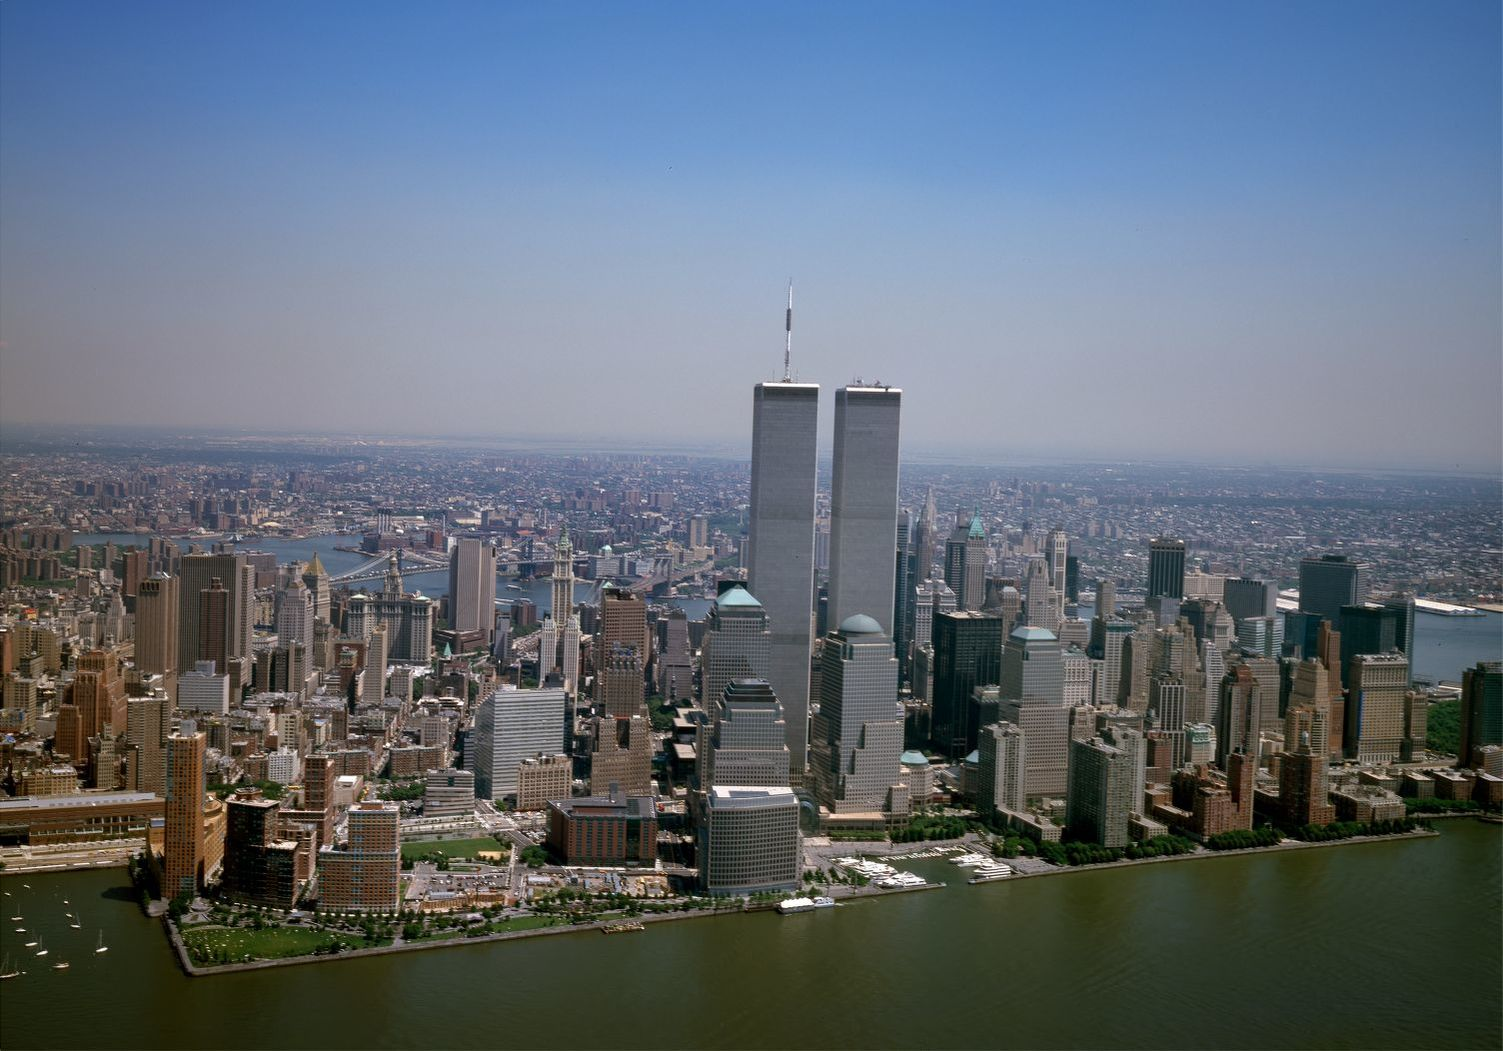 Aerial view of New York City, with the World Trade Center